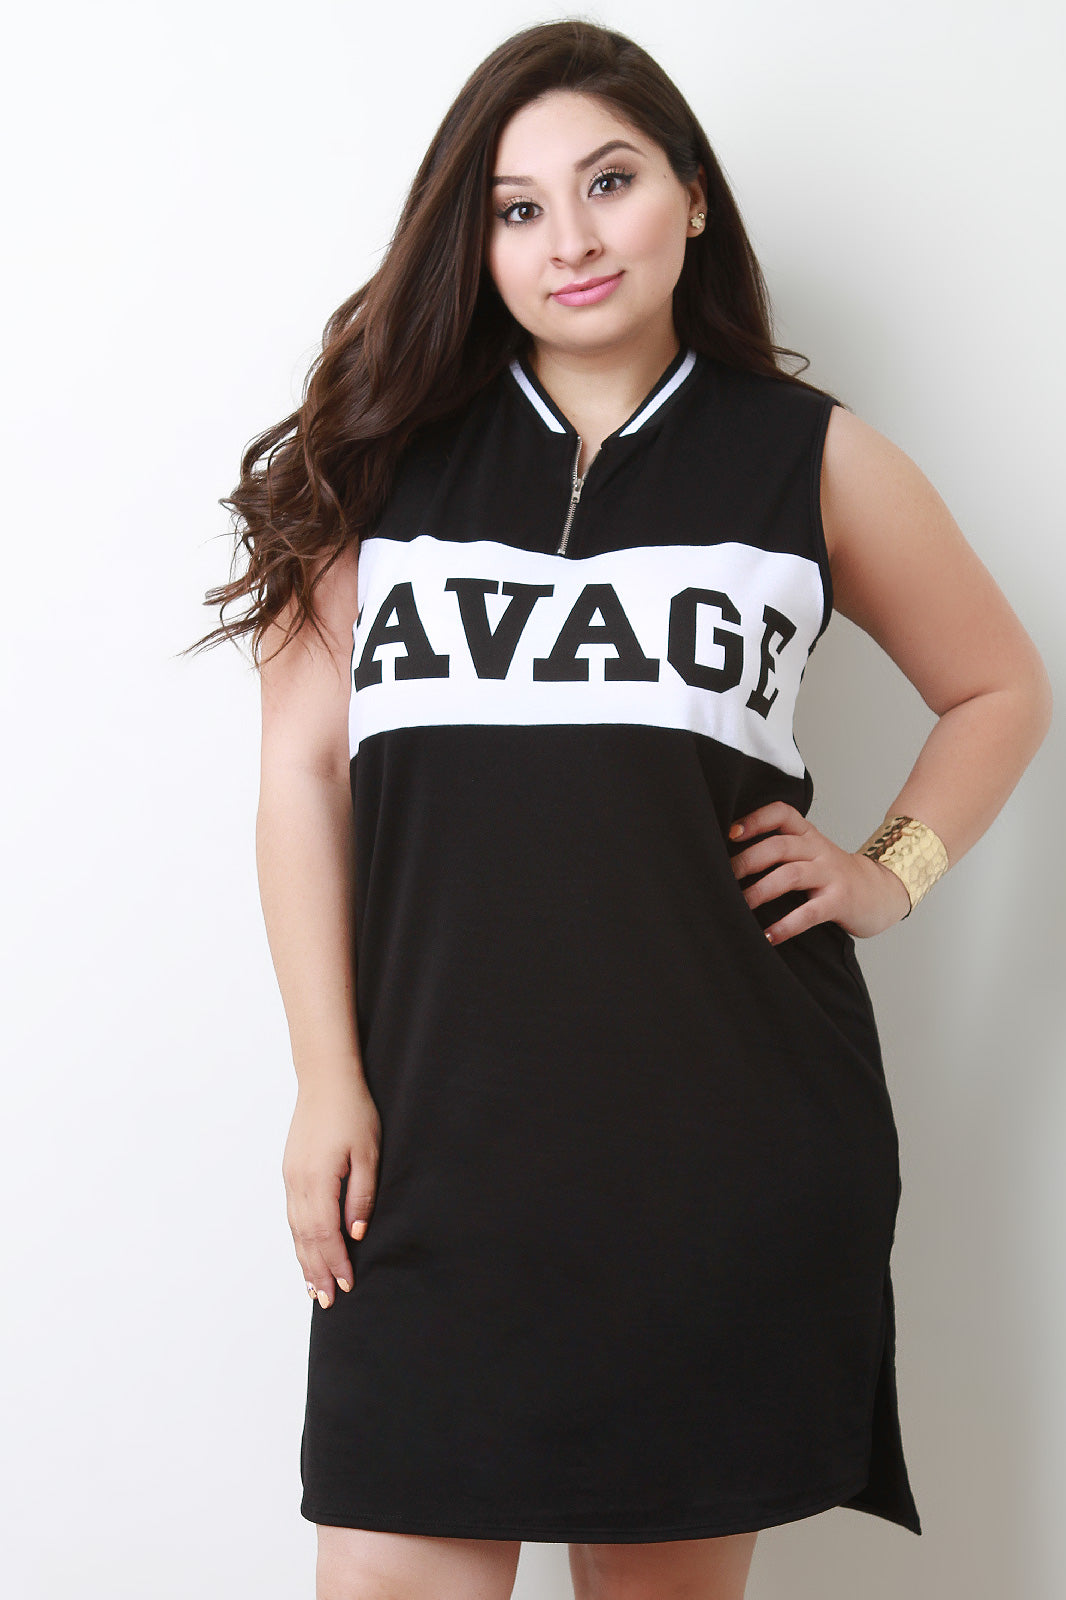 Ivy Savage Zippered Crew Neck Sleeveless Mini Dress